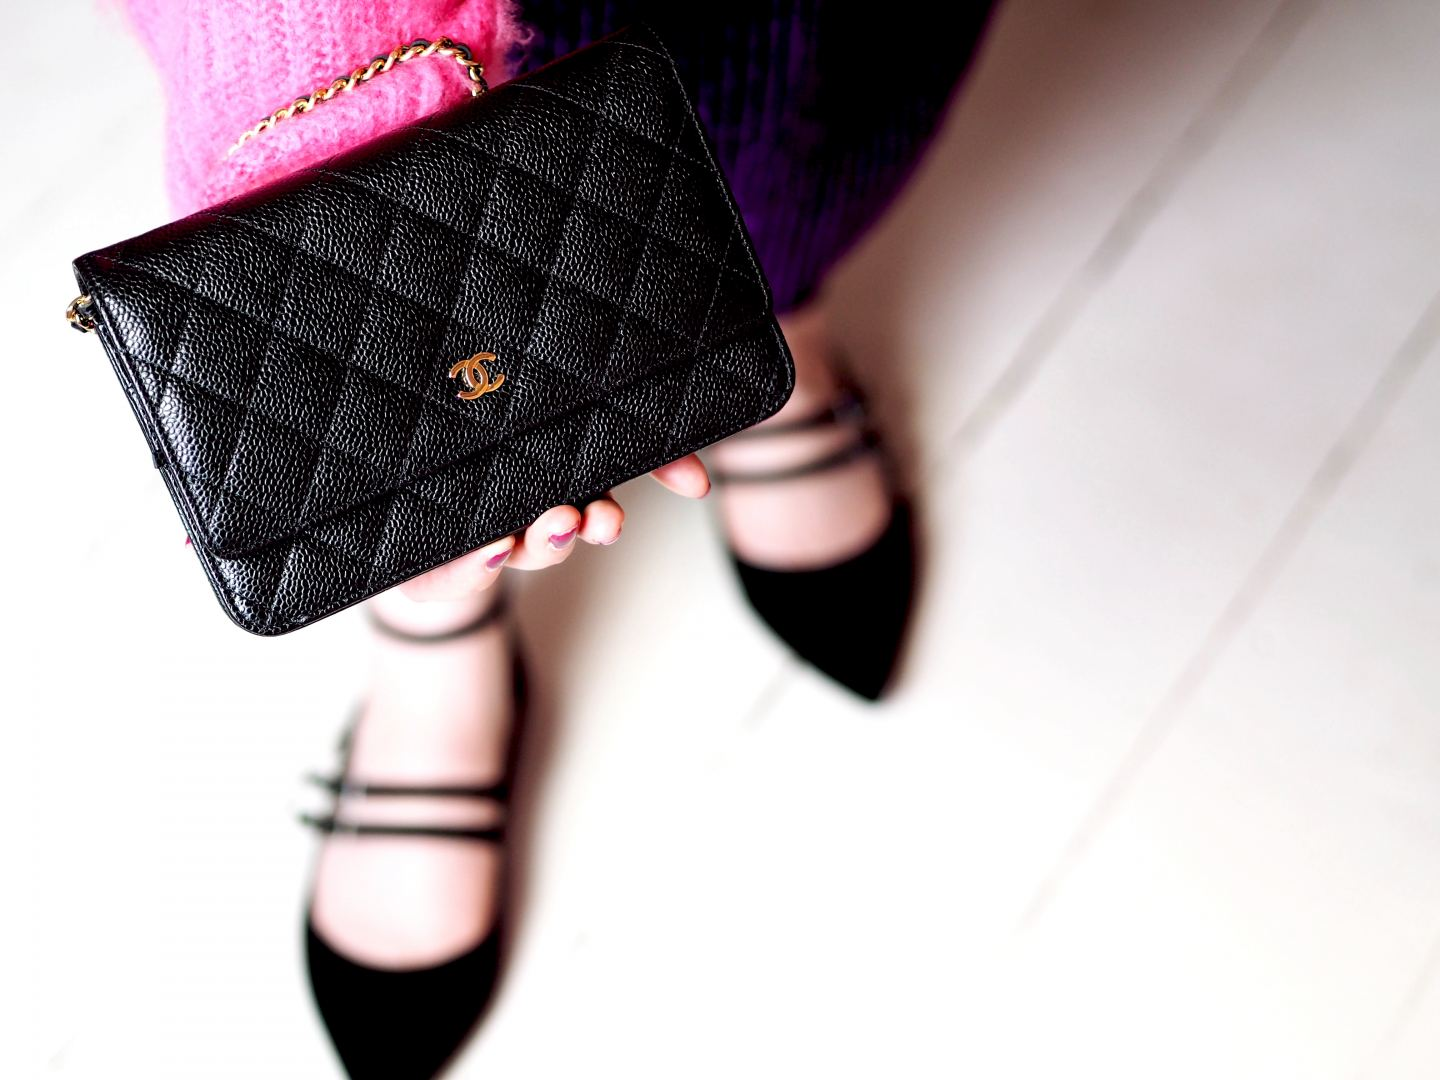 chanel wallet on chanel handbag black caviar leather fashion for lunch blog a